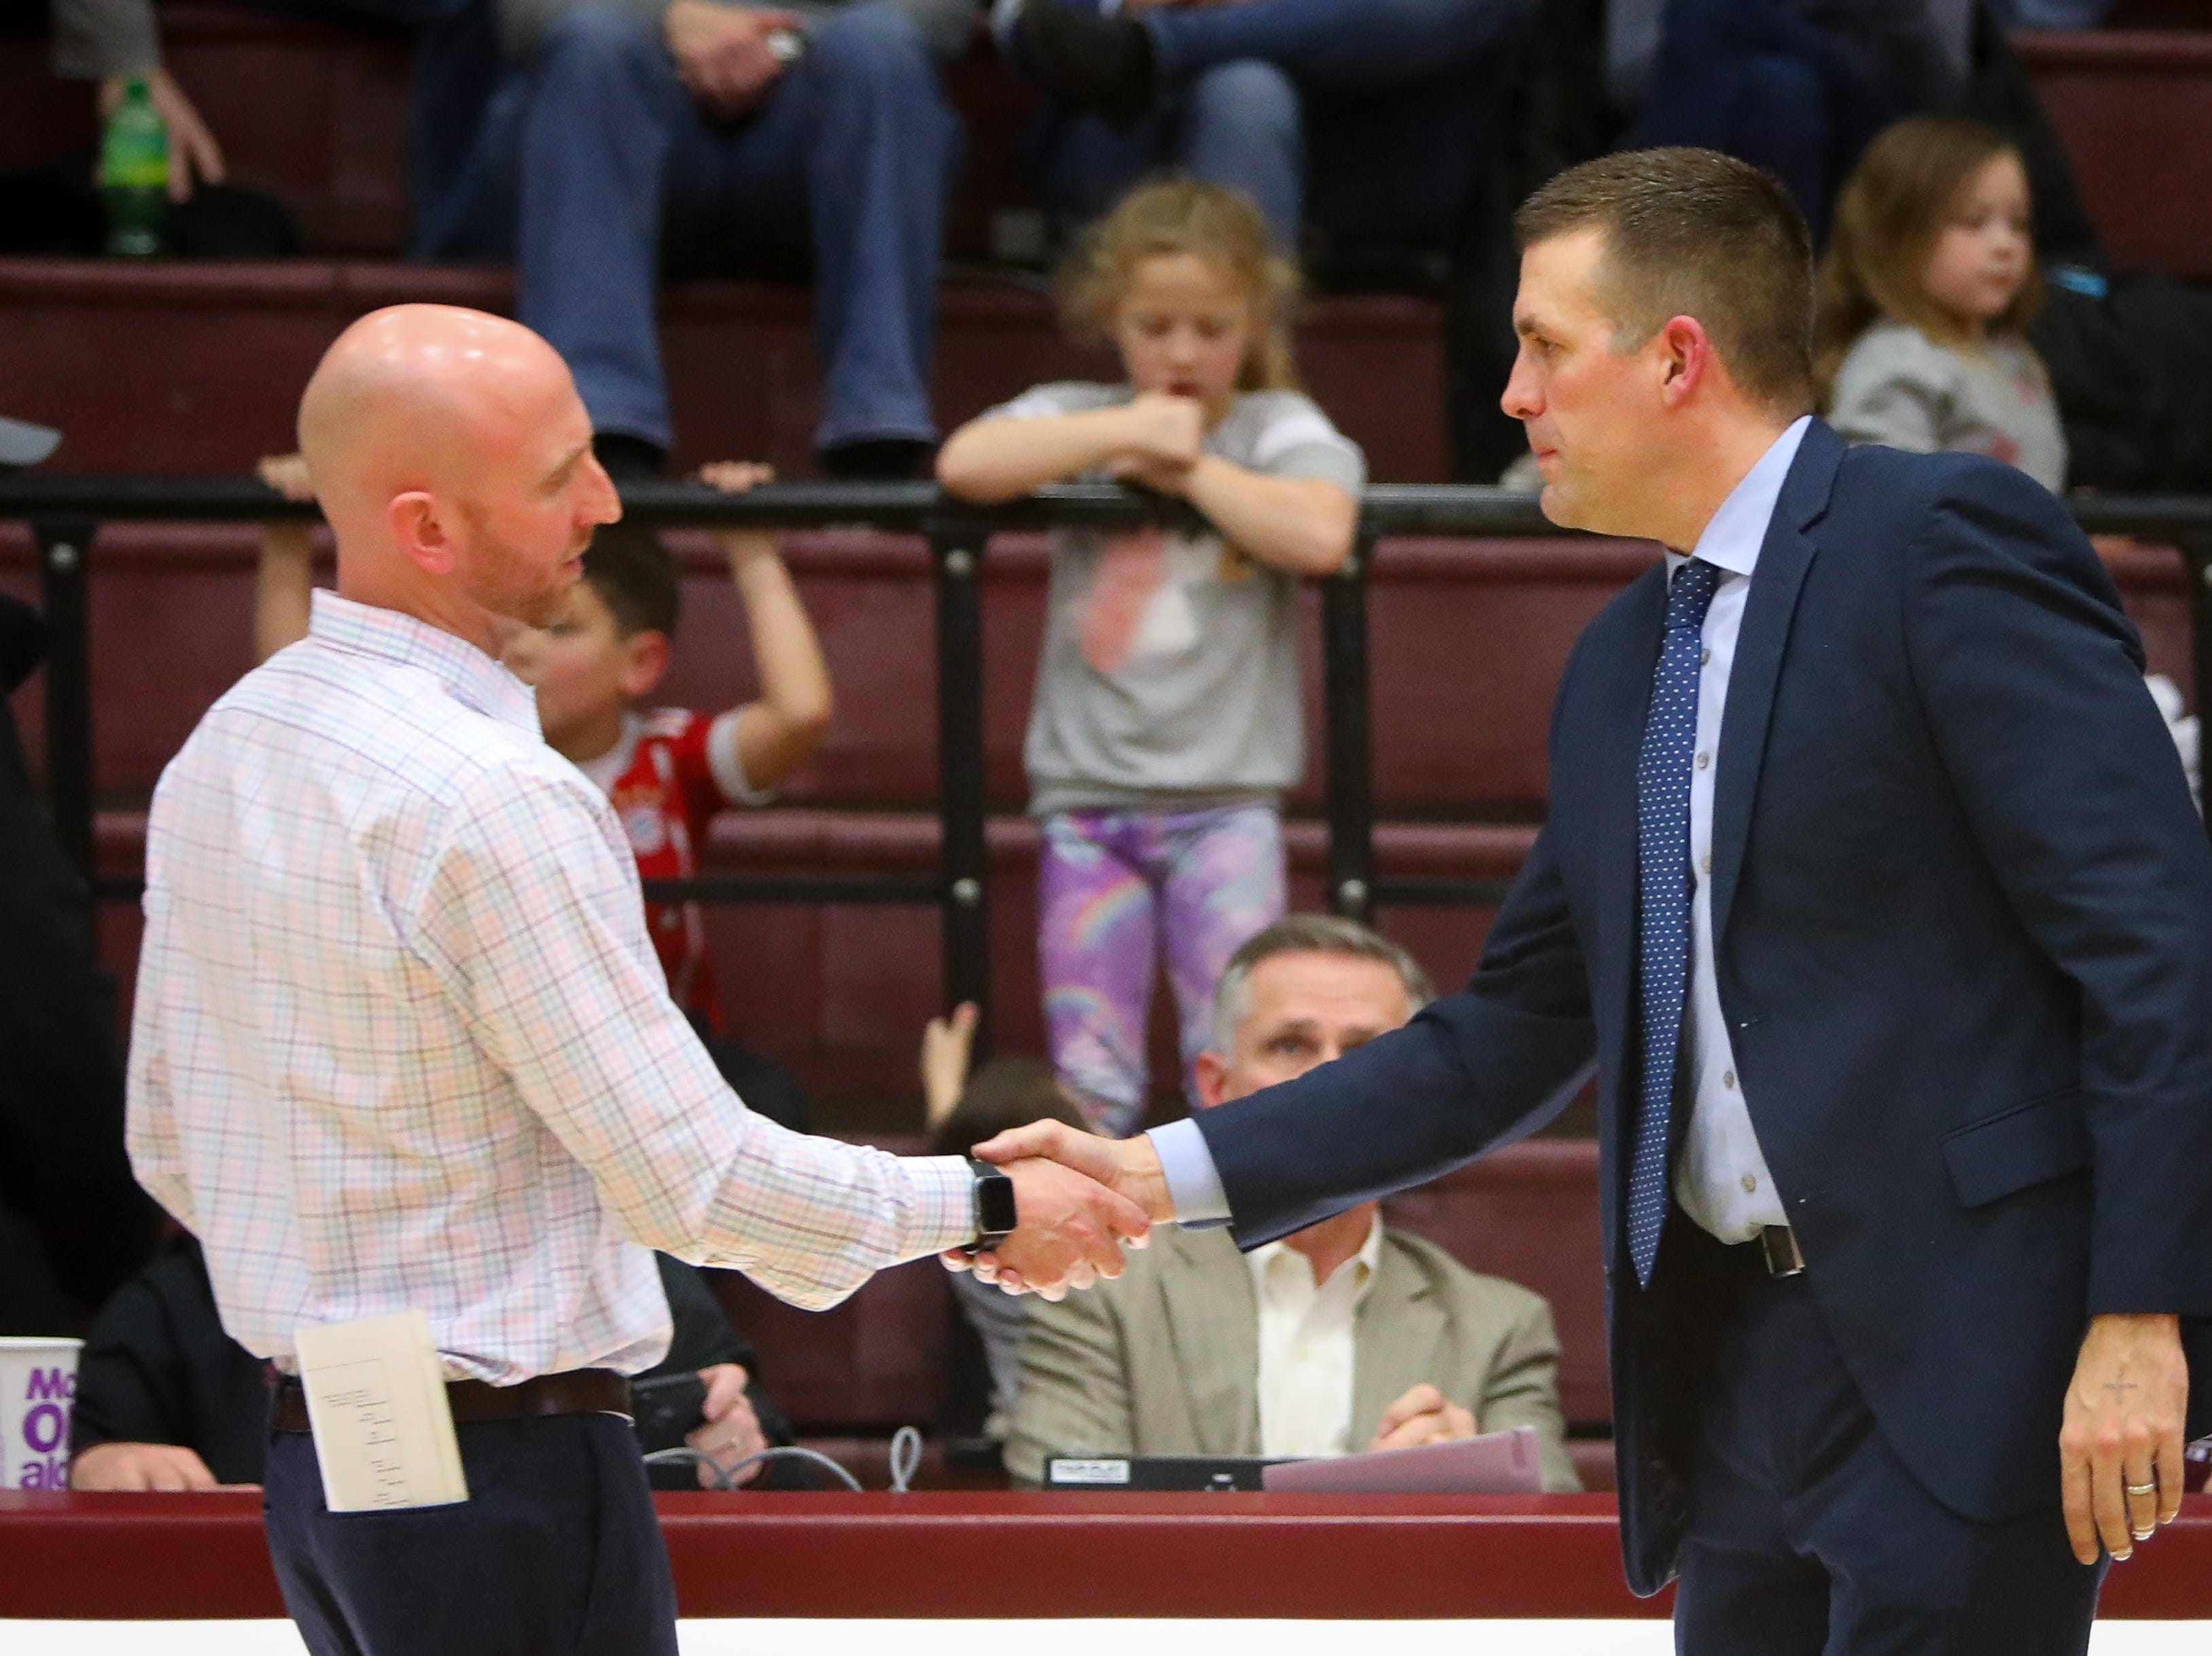 Dowling head coach Mike O'Connor (left) and Urbandale head coach Jon Schmitz shake hands after the Maroons defeated the J-Hawks, 42-35, in a boys high school basketball game at Dowling Catholic High School on Jan. 11, 2019 in West Des Moines, Iowa.